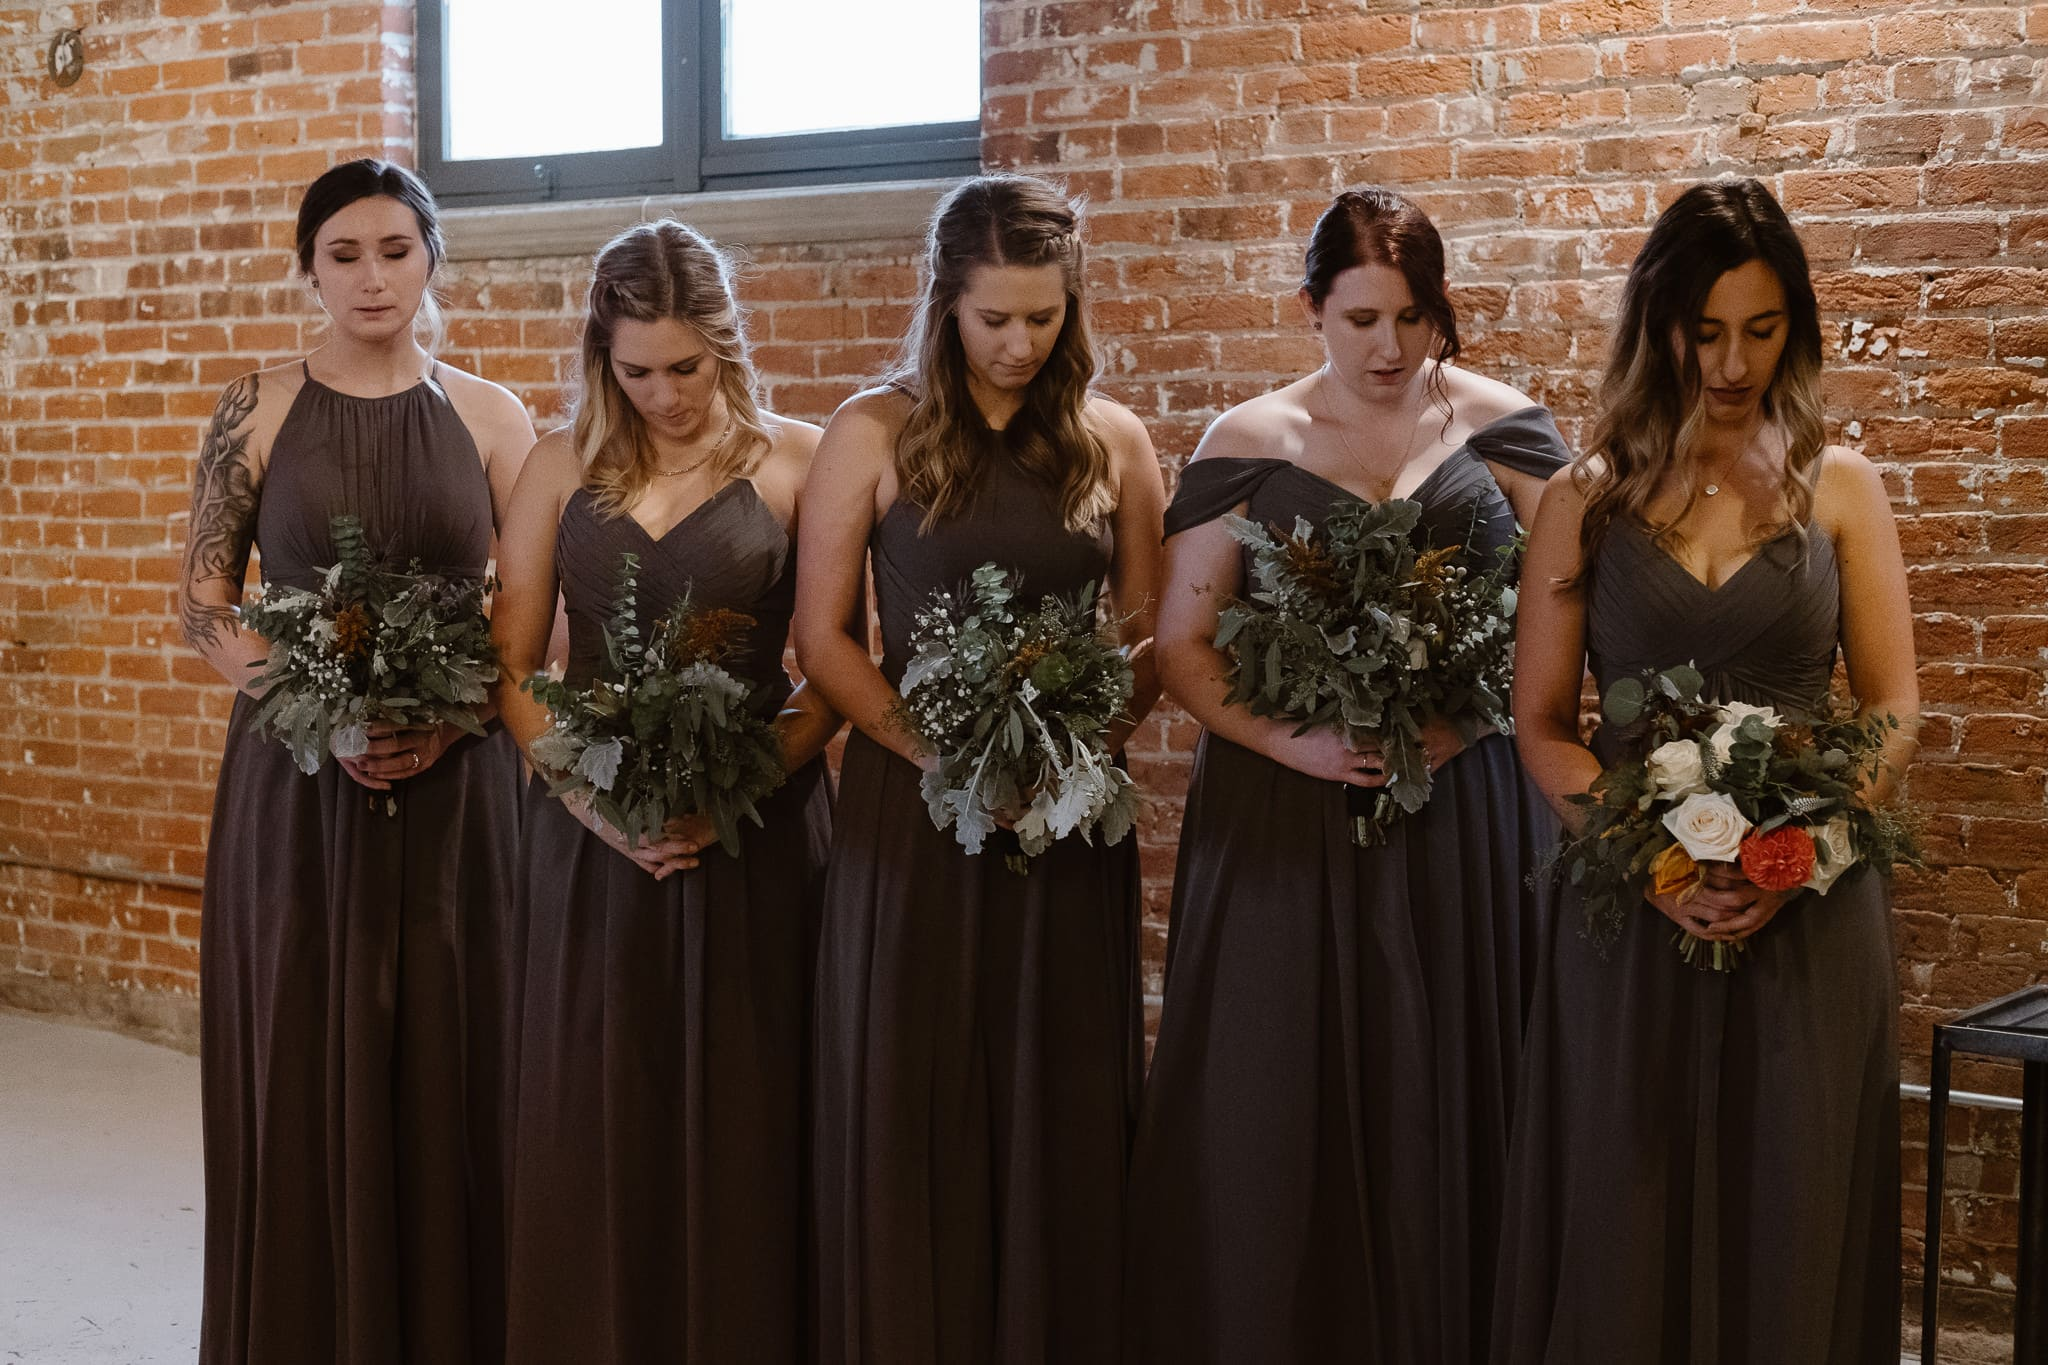 St Vrain Wedding Photographer | Longmont Wedding Photographer | Colorado Winter Wedding Photographer, Colorado industrial chic wedding ceremony, bridesmaids in dark gray dresses